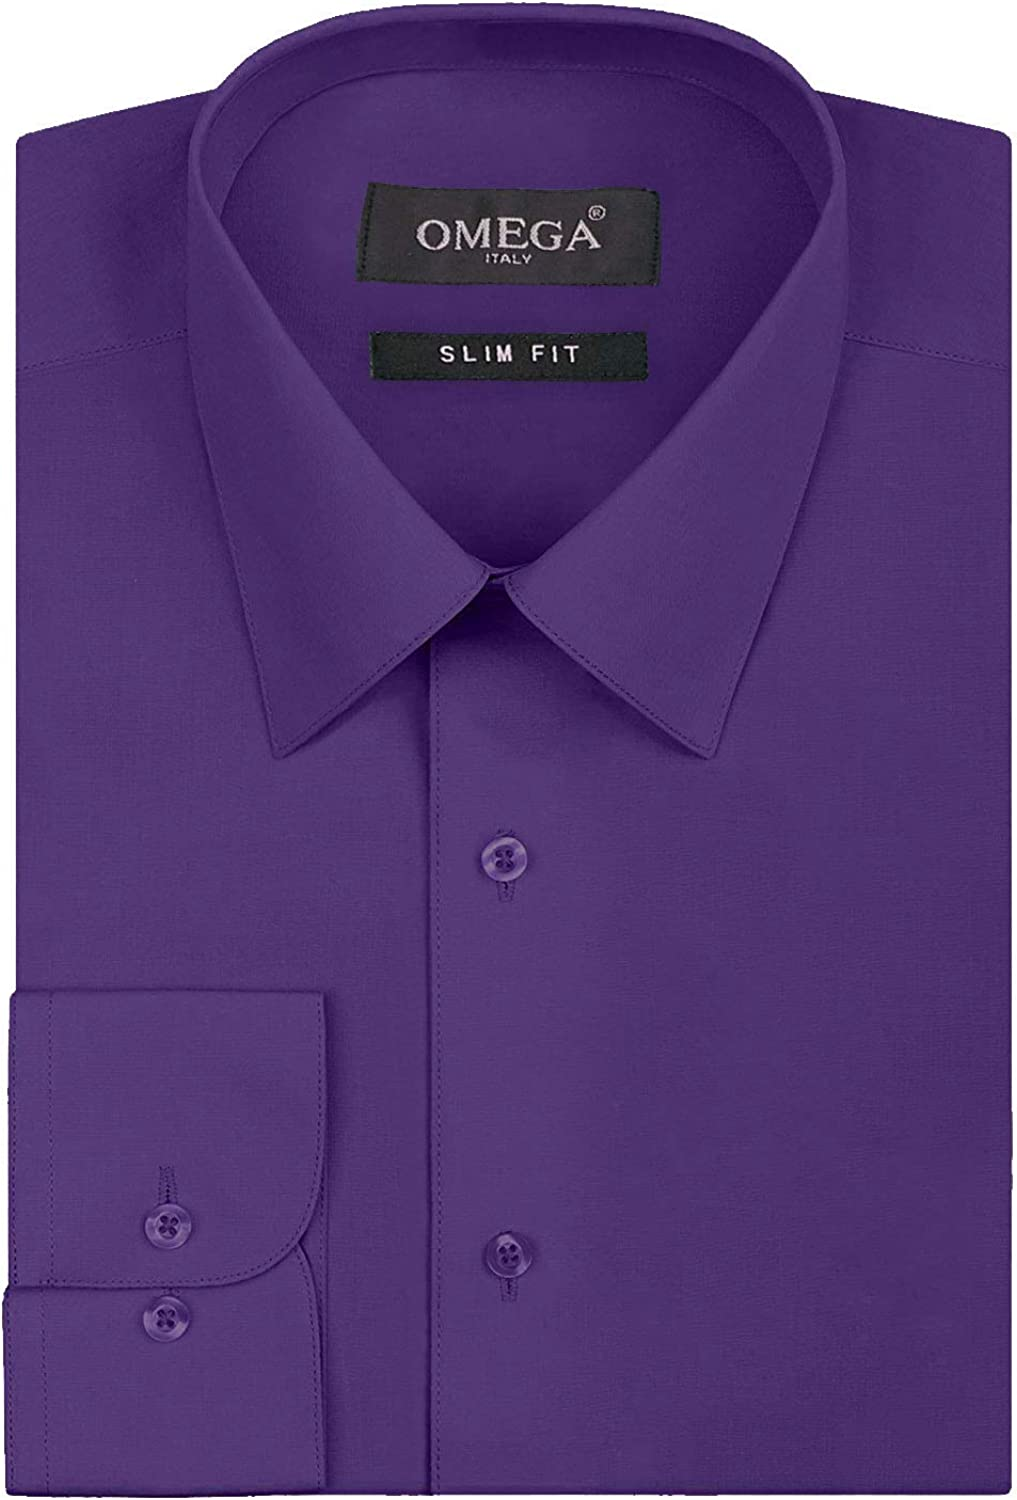 Italy Men's Premium Slim Fit Button Up Long Sleeve Solid Color Dress Shirt - Purple - S (14-14.5) 32/33 Sleeve